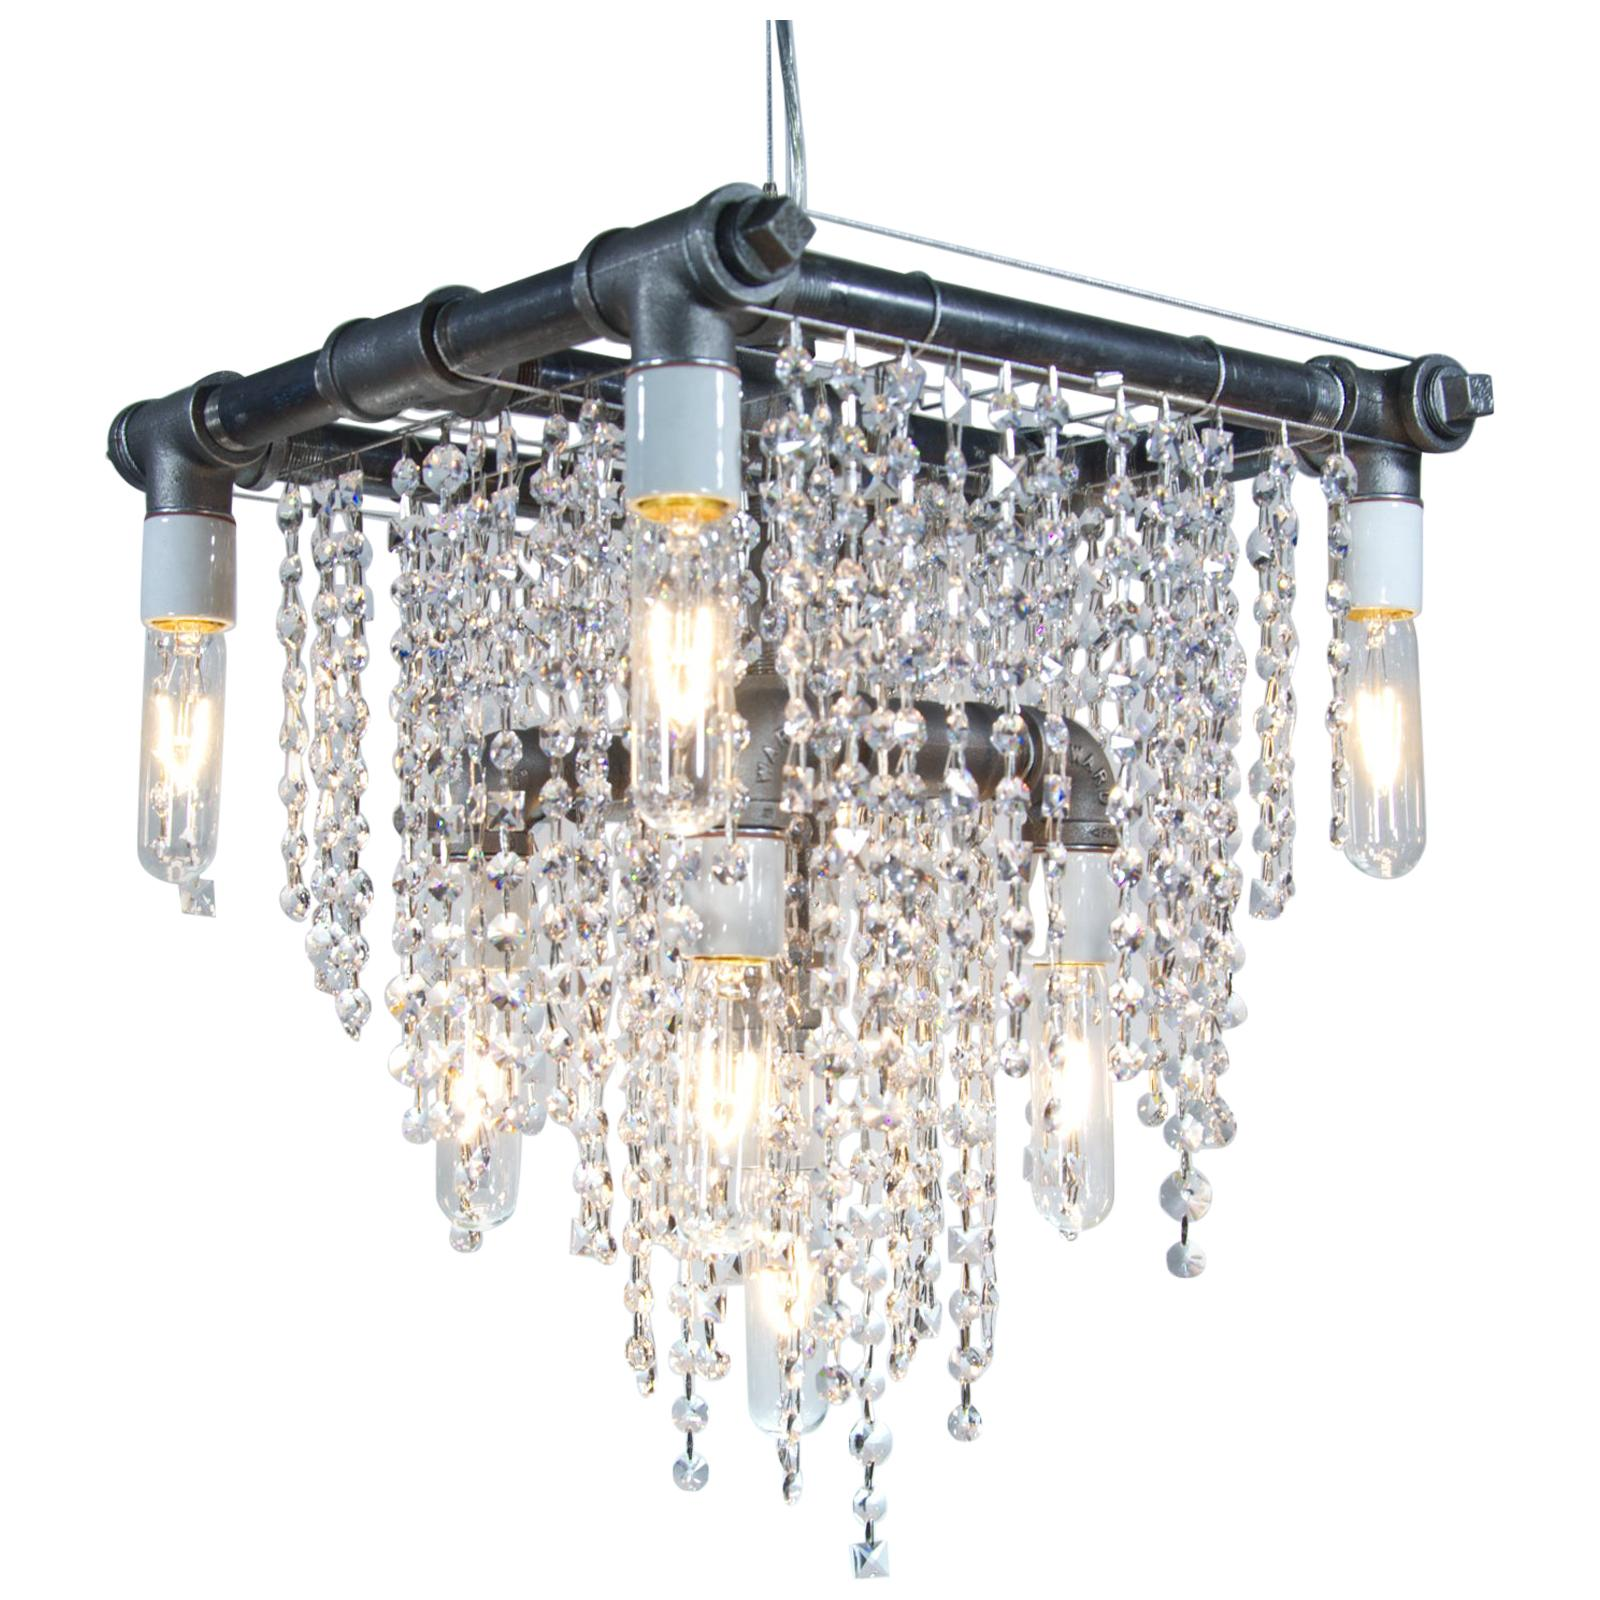 Industrial 9-Light Black Steel and Crystal Compact Pendant Chandelier